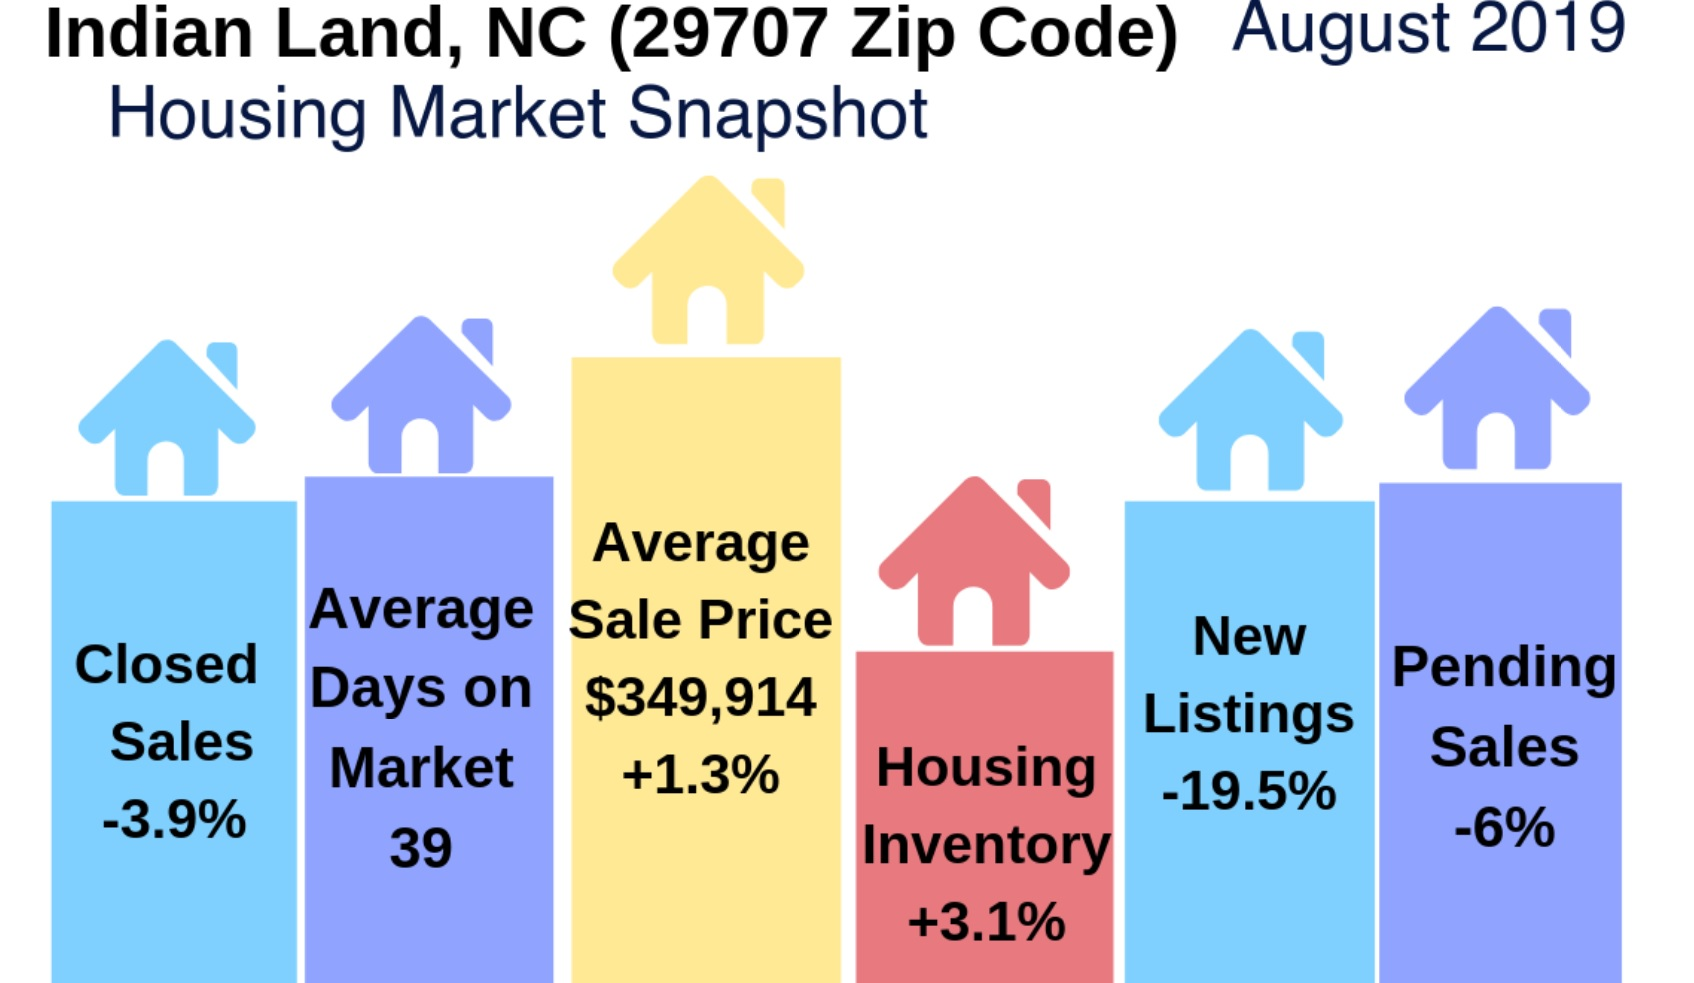 Indian Land, SC (29707) Real Estate Report: August 2019